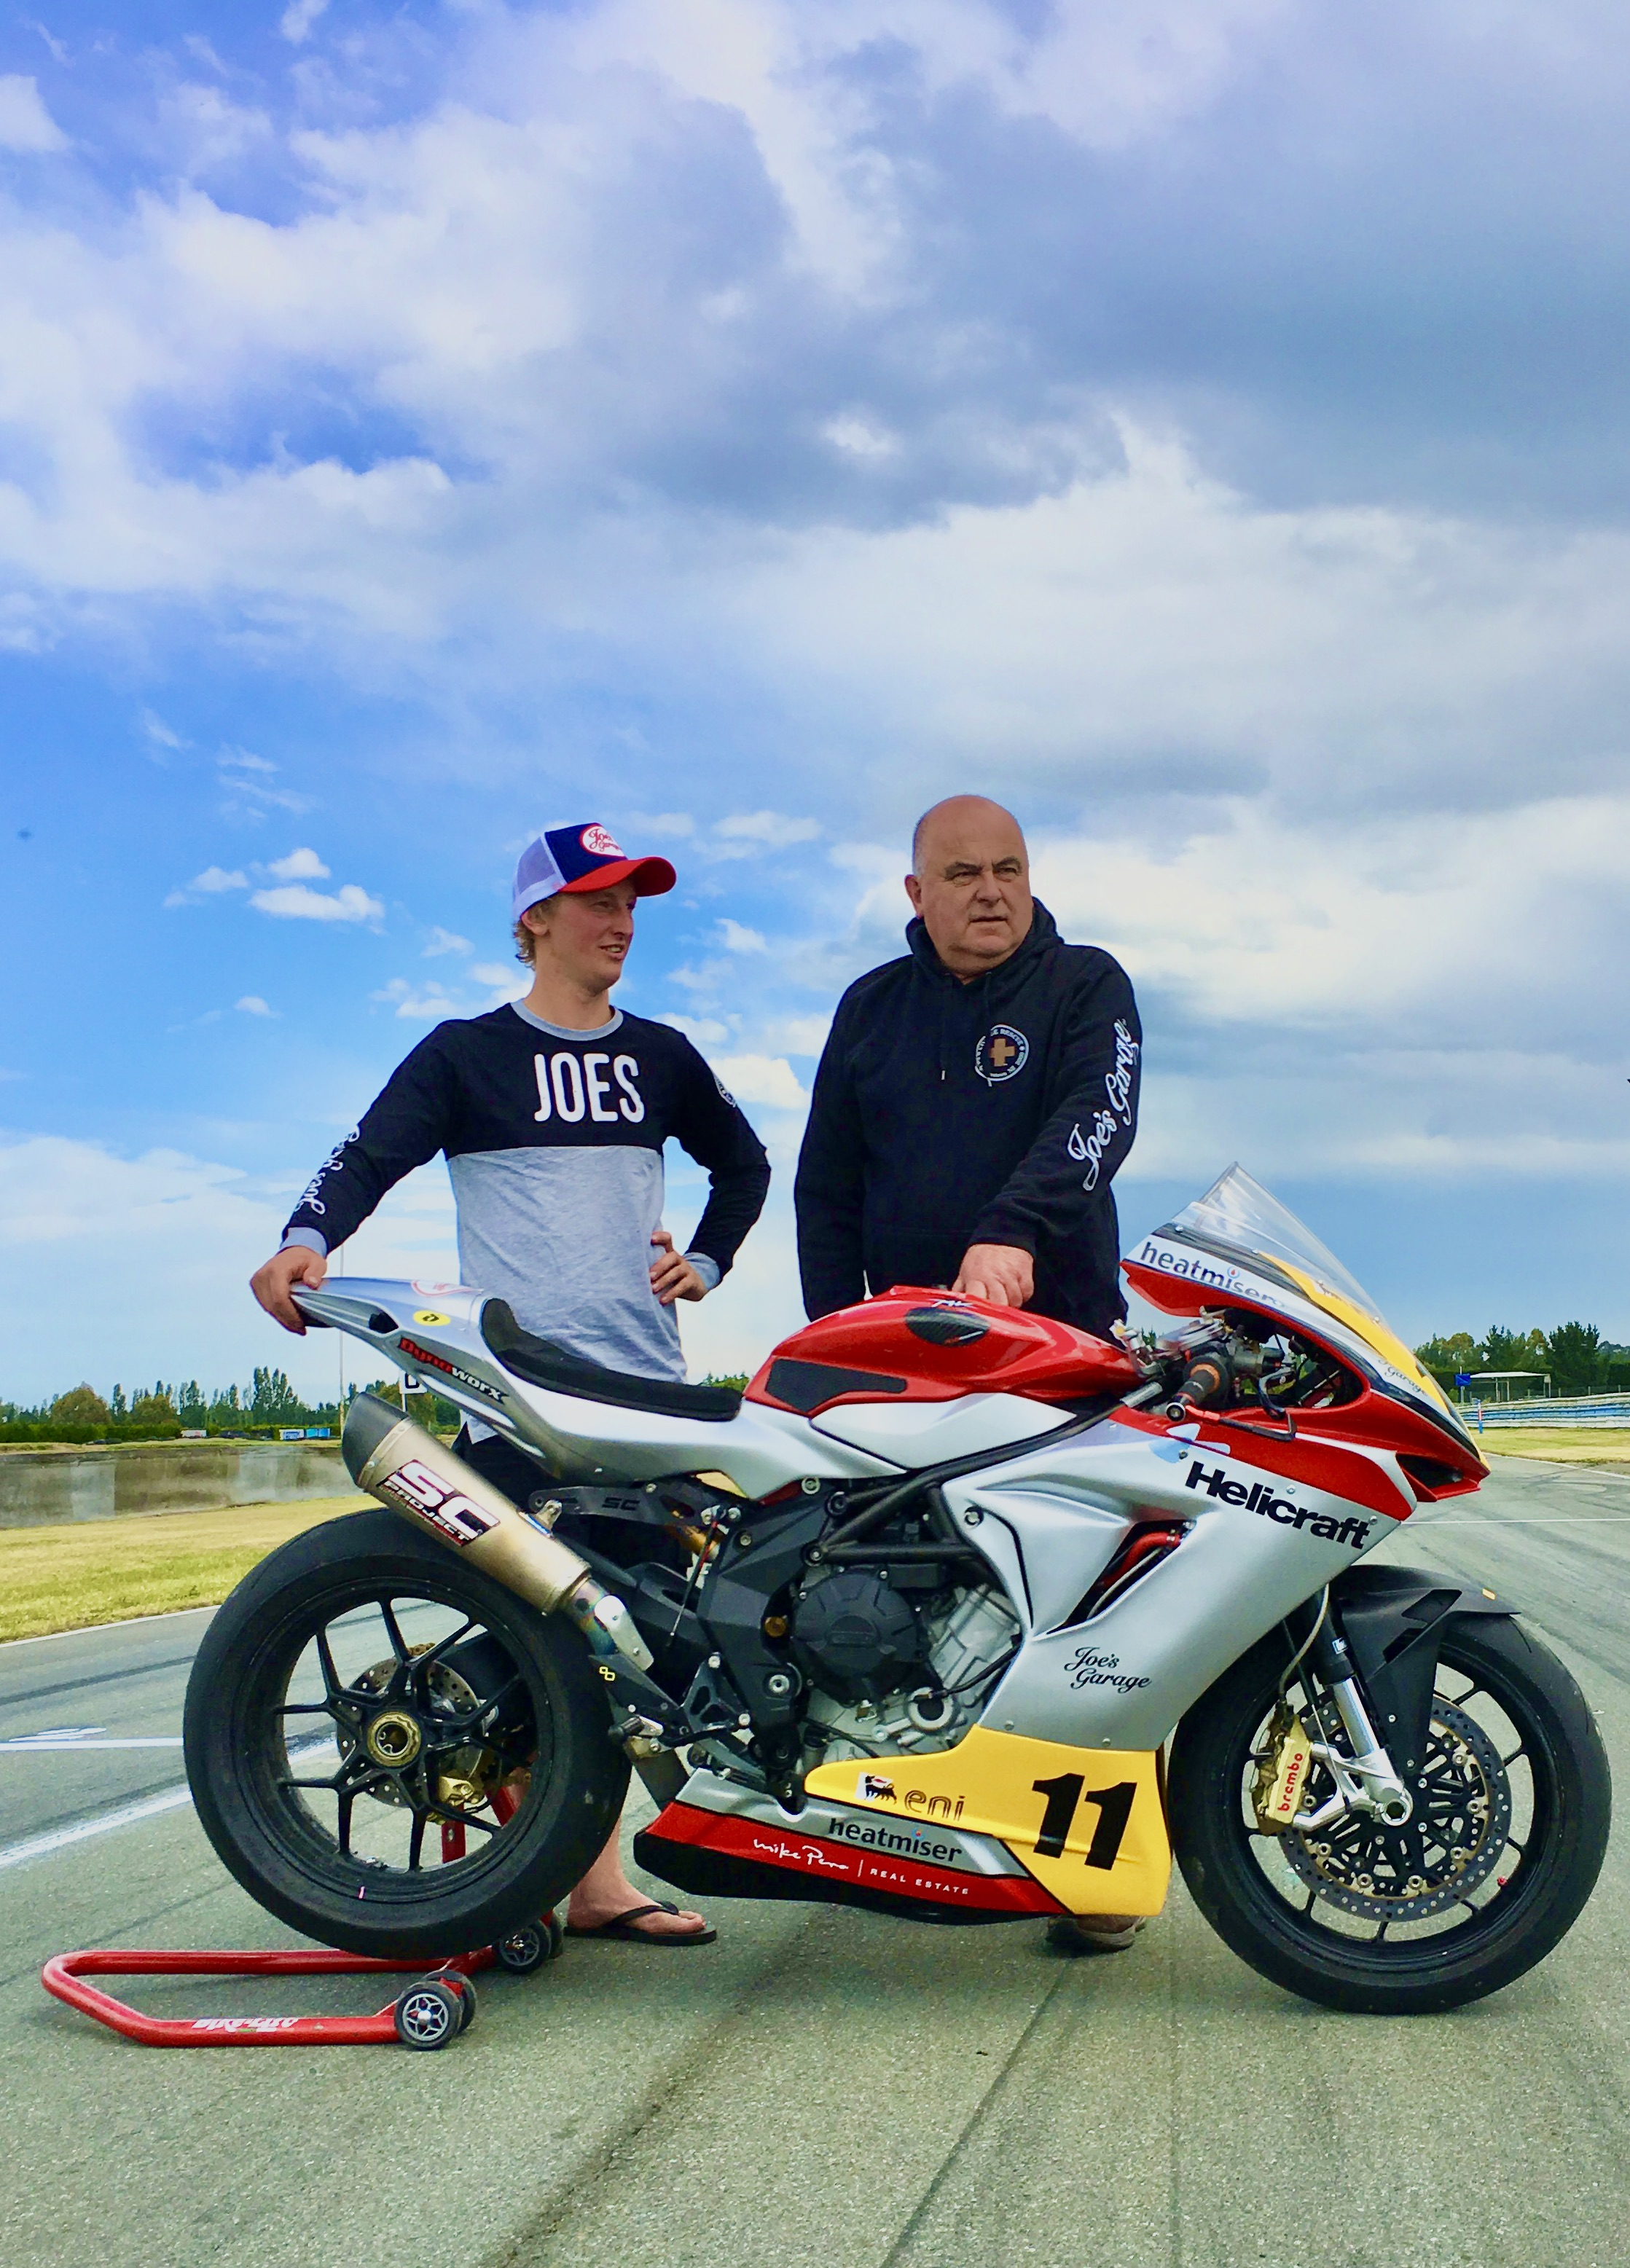 Rider Seth Devereux, of Tapanui (left), and Helicraft Racing owner Rod Price, of Wanaka, with the MV Agusta they will race in the 2020 New Zealand 600 Supersport Championship. Photo: Supplied